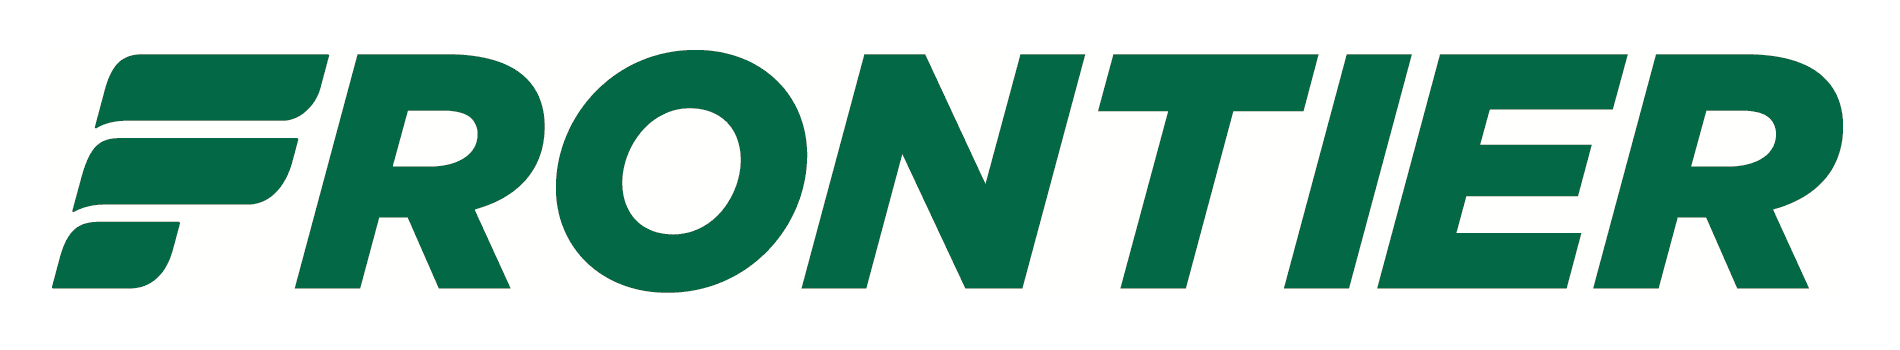 Frontier Airlines logo, logotype